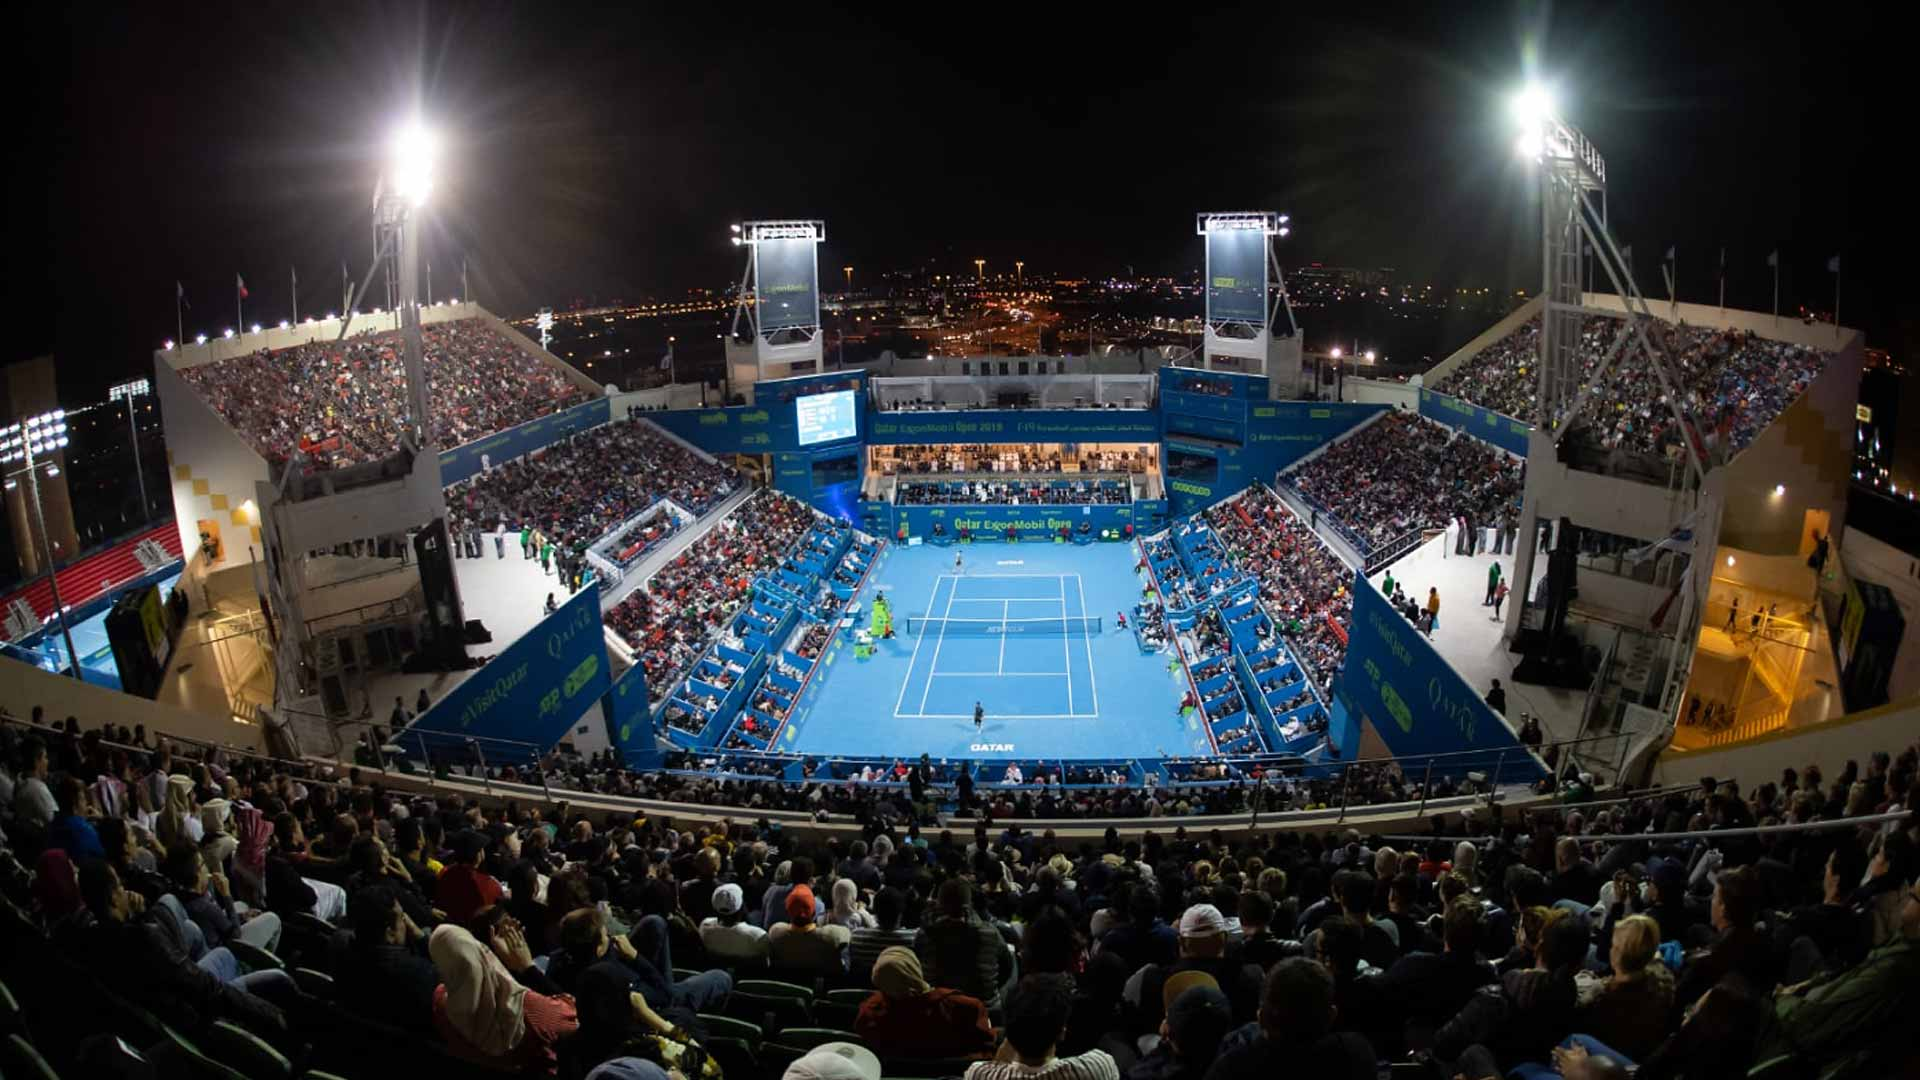 The Qatar ExxonMobil Open in Doha claims the Tournament of the Year award in the 250 category in the 2019 ATP Awards.